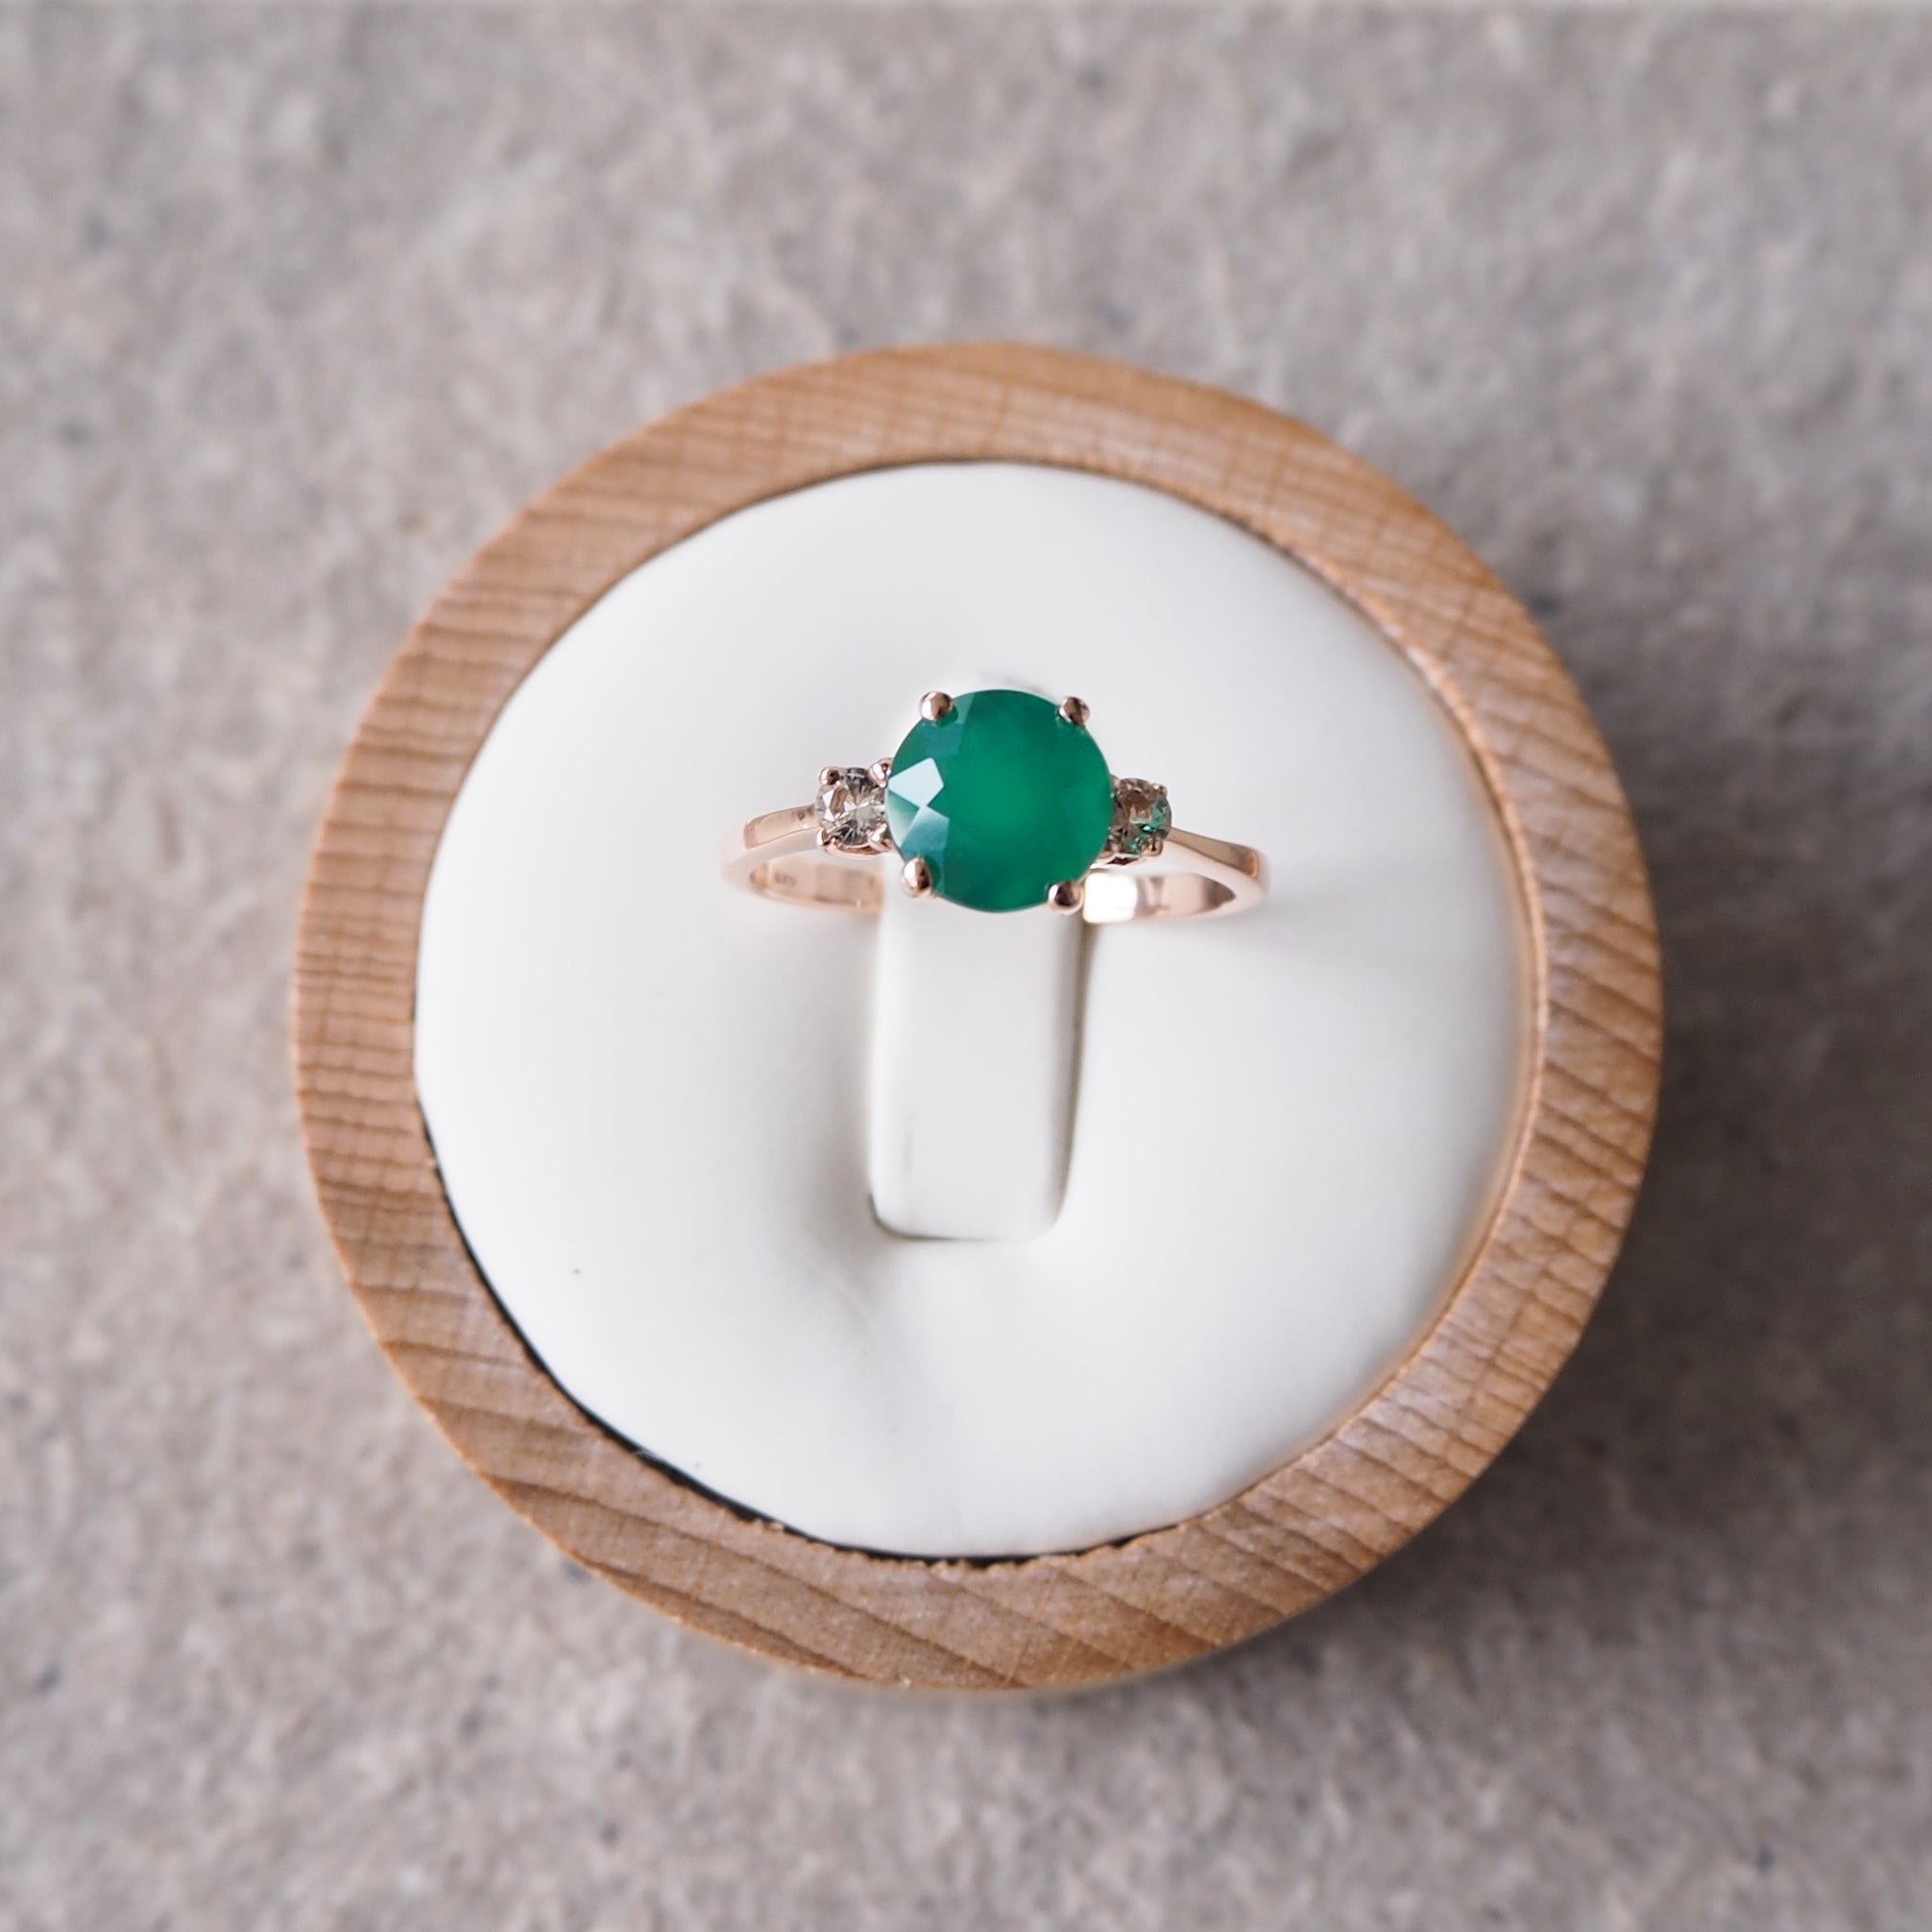 Scarlett Ring - Green Onyx